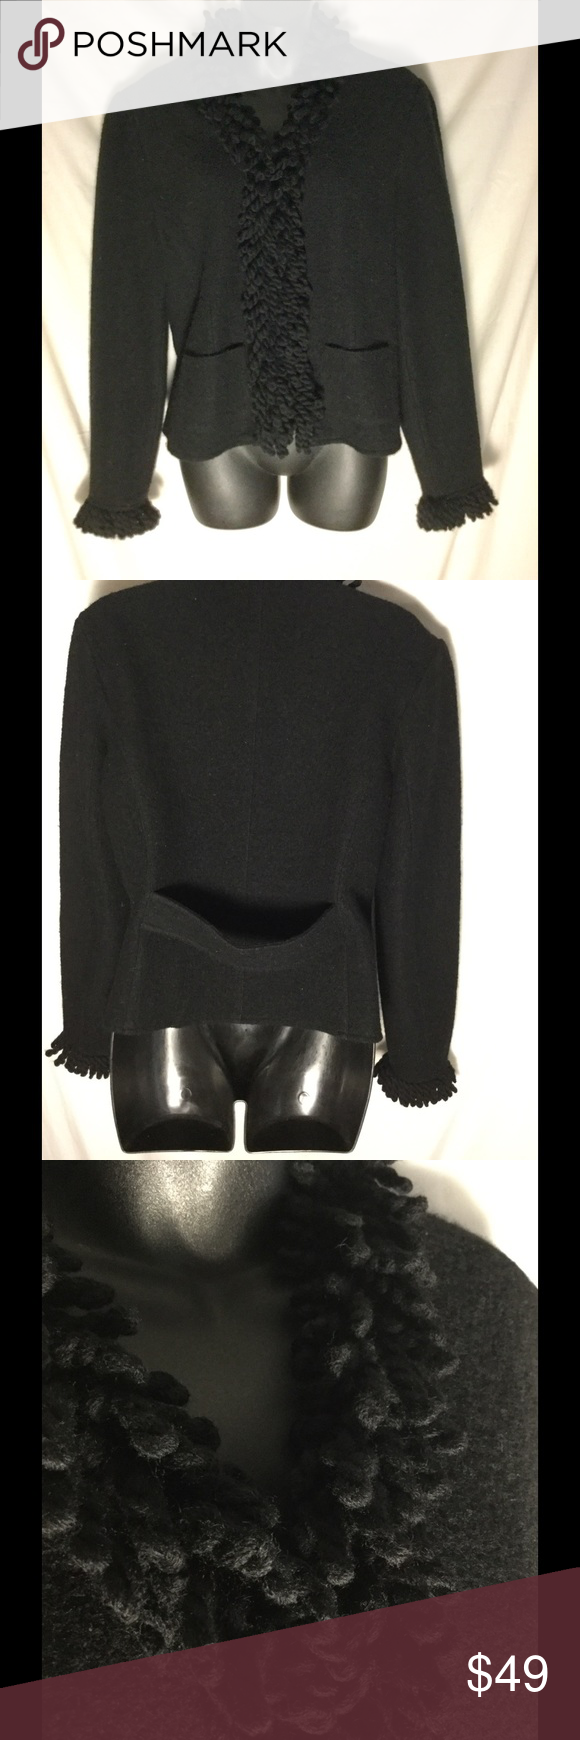 """Talbots boiled wool fringe snap cardigan S Very nice condition, near new nicely fringed cuff and front cardigan. Boiled wool. Size Small. Bust armpit to armpit 21 inches. Length center back under collar to end of hem. 21 1/2 inches. Sleeves from shoulder 24"""". Nice back belt.   Great for holidays Talbots Sweaters Cardigans"""